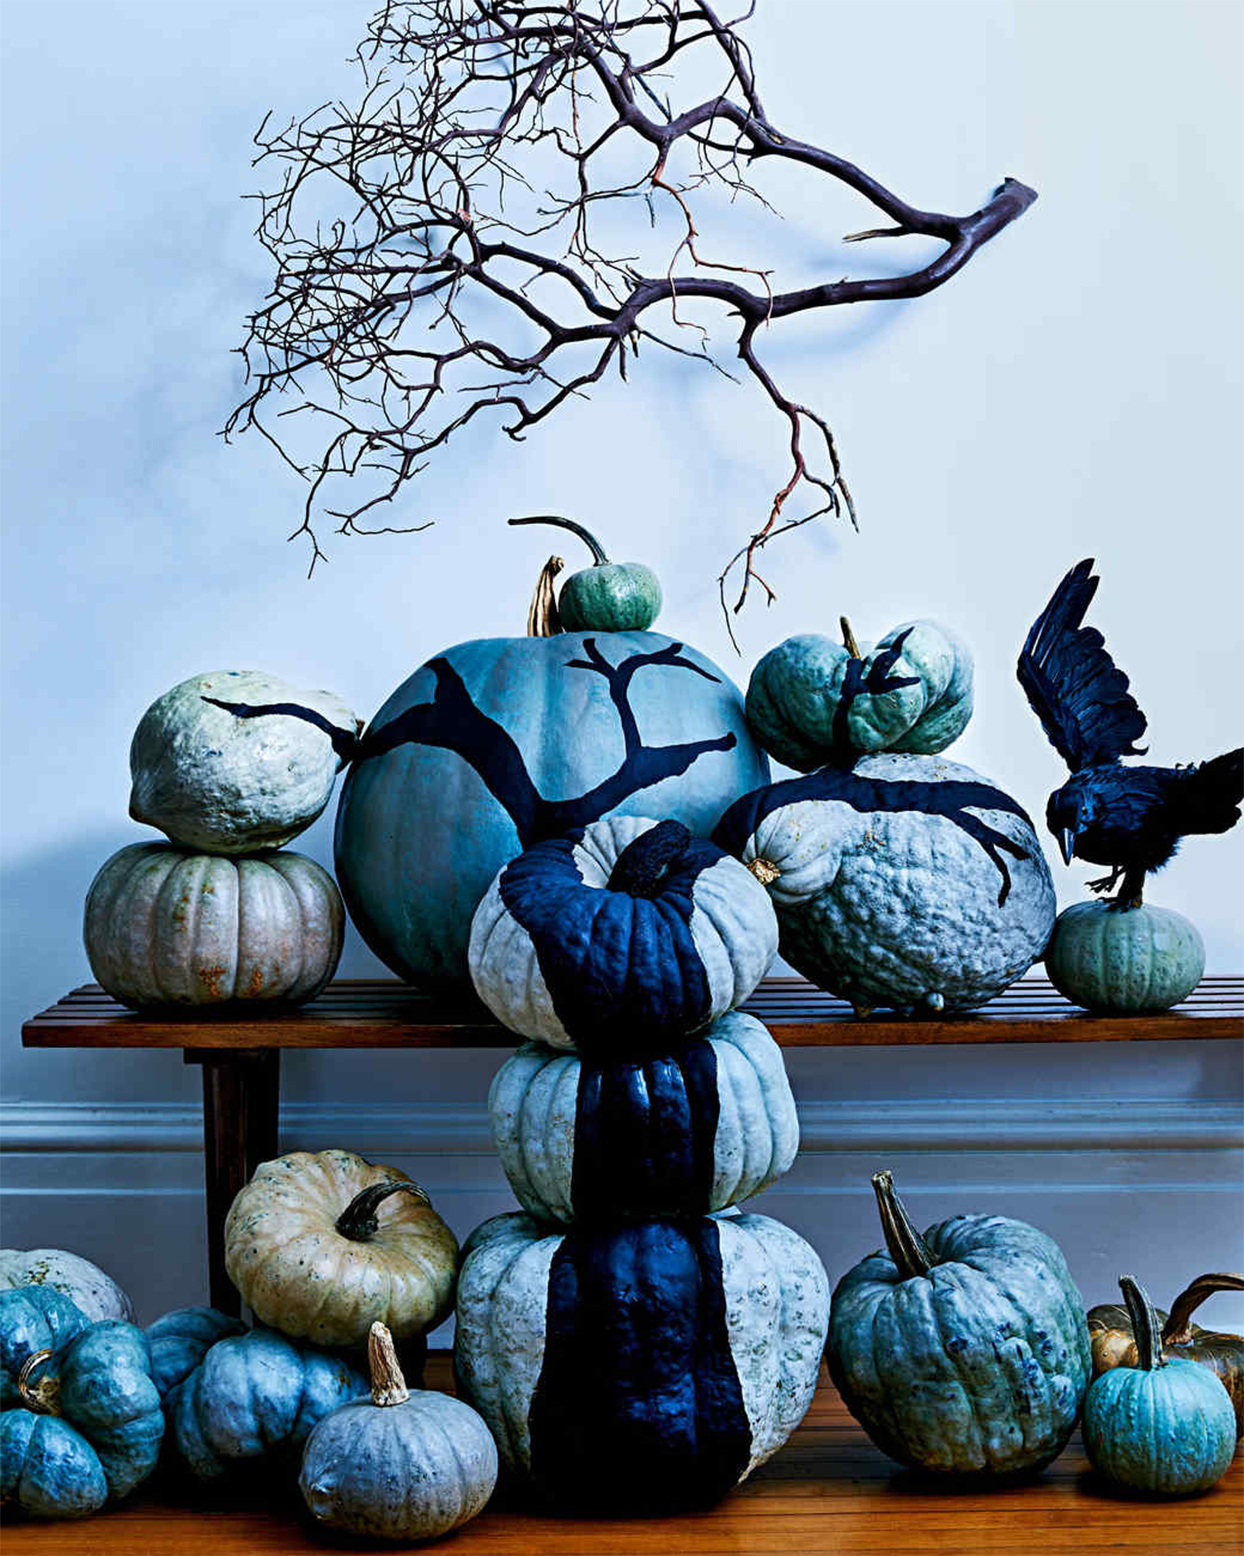 painted pumpkins stacked to form a tree